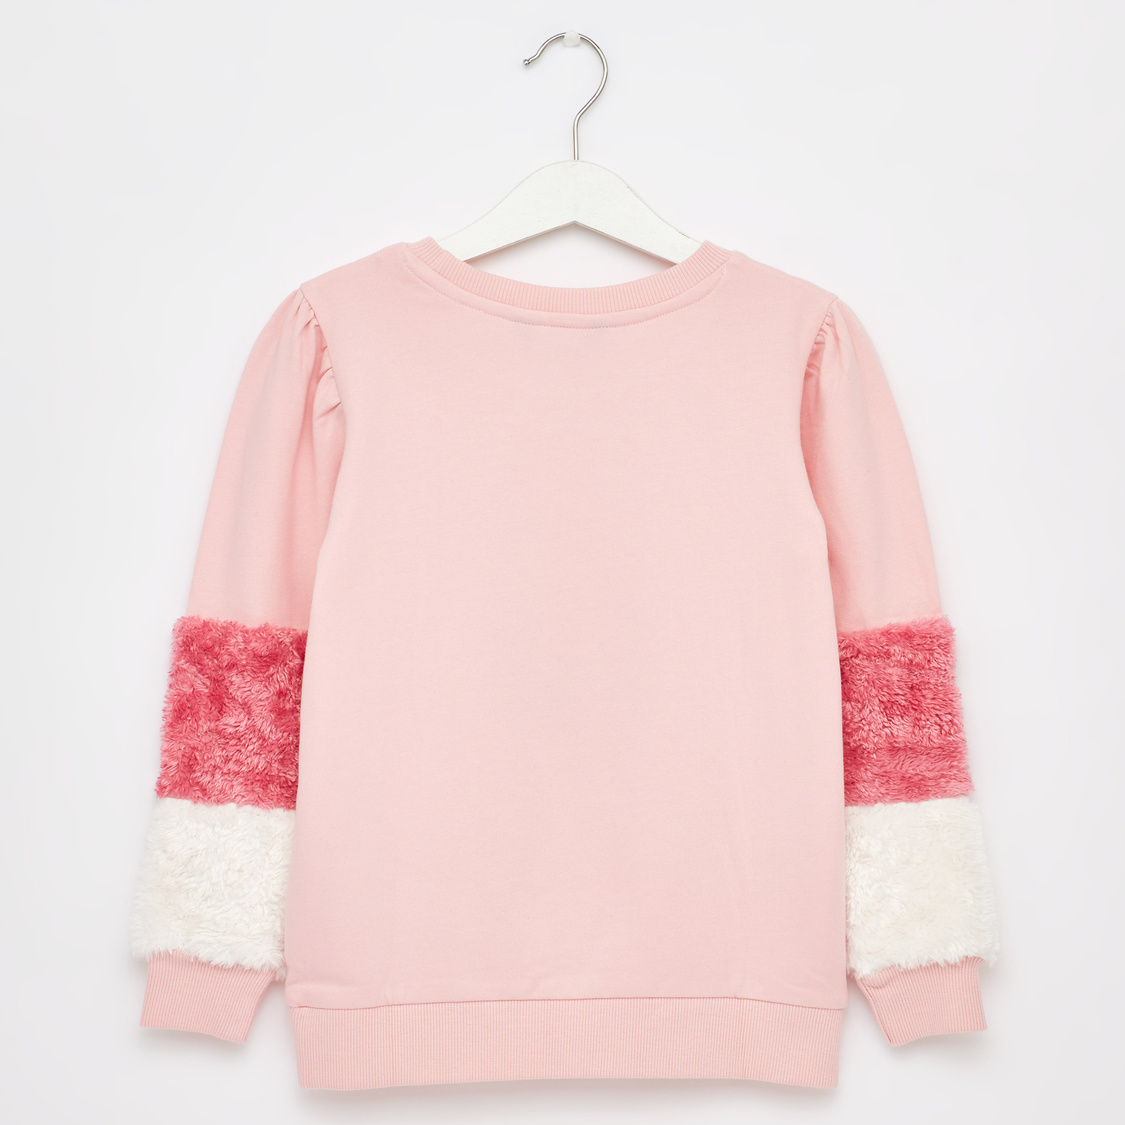 Sweat Top with Round Neck and Long Sleeves